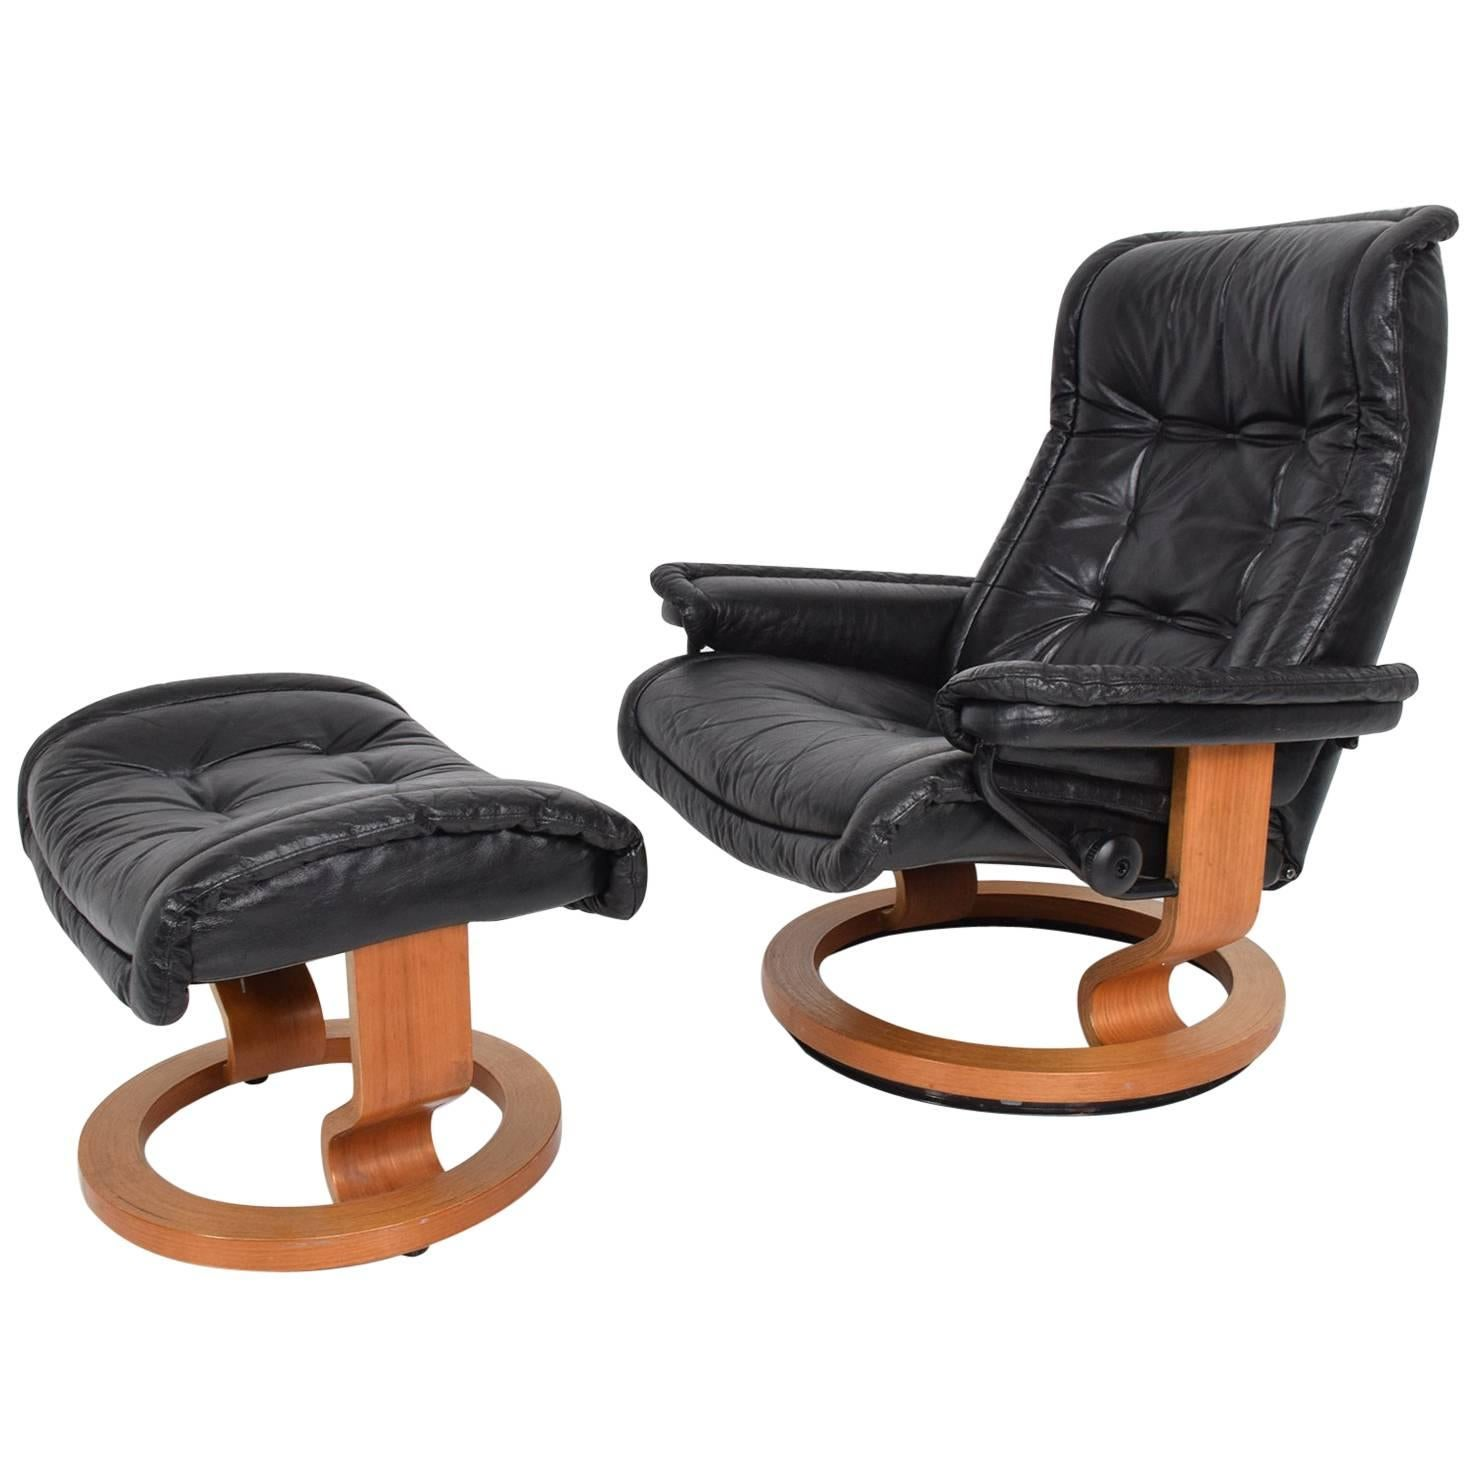 Ekornes Stressless Vintage Scandinavian Modern Ekornes Stressless Recliner Chair And Ottoman